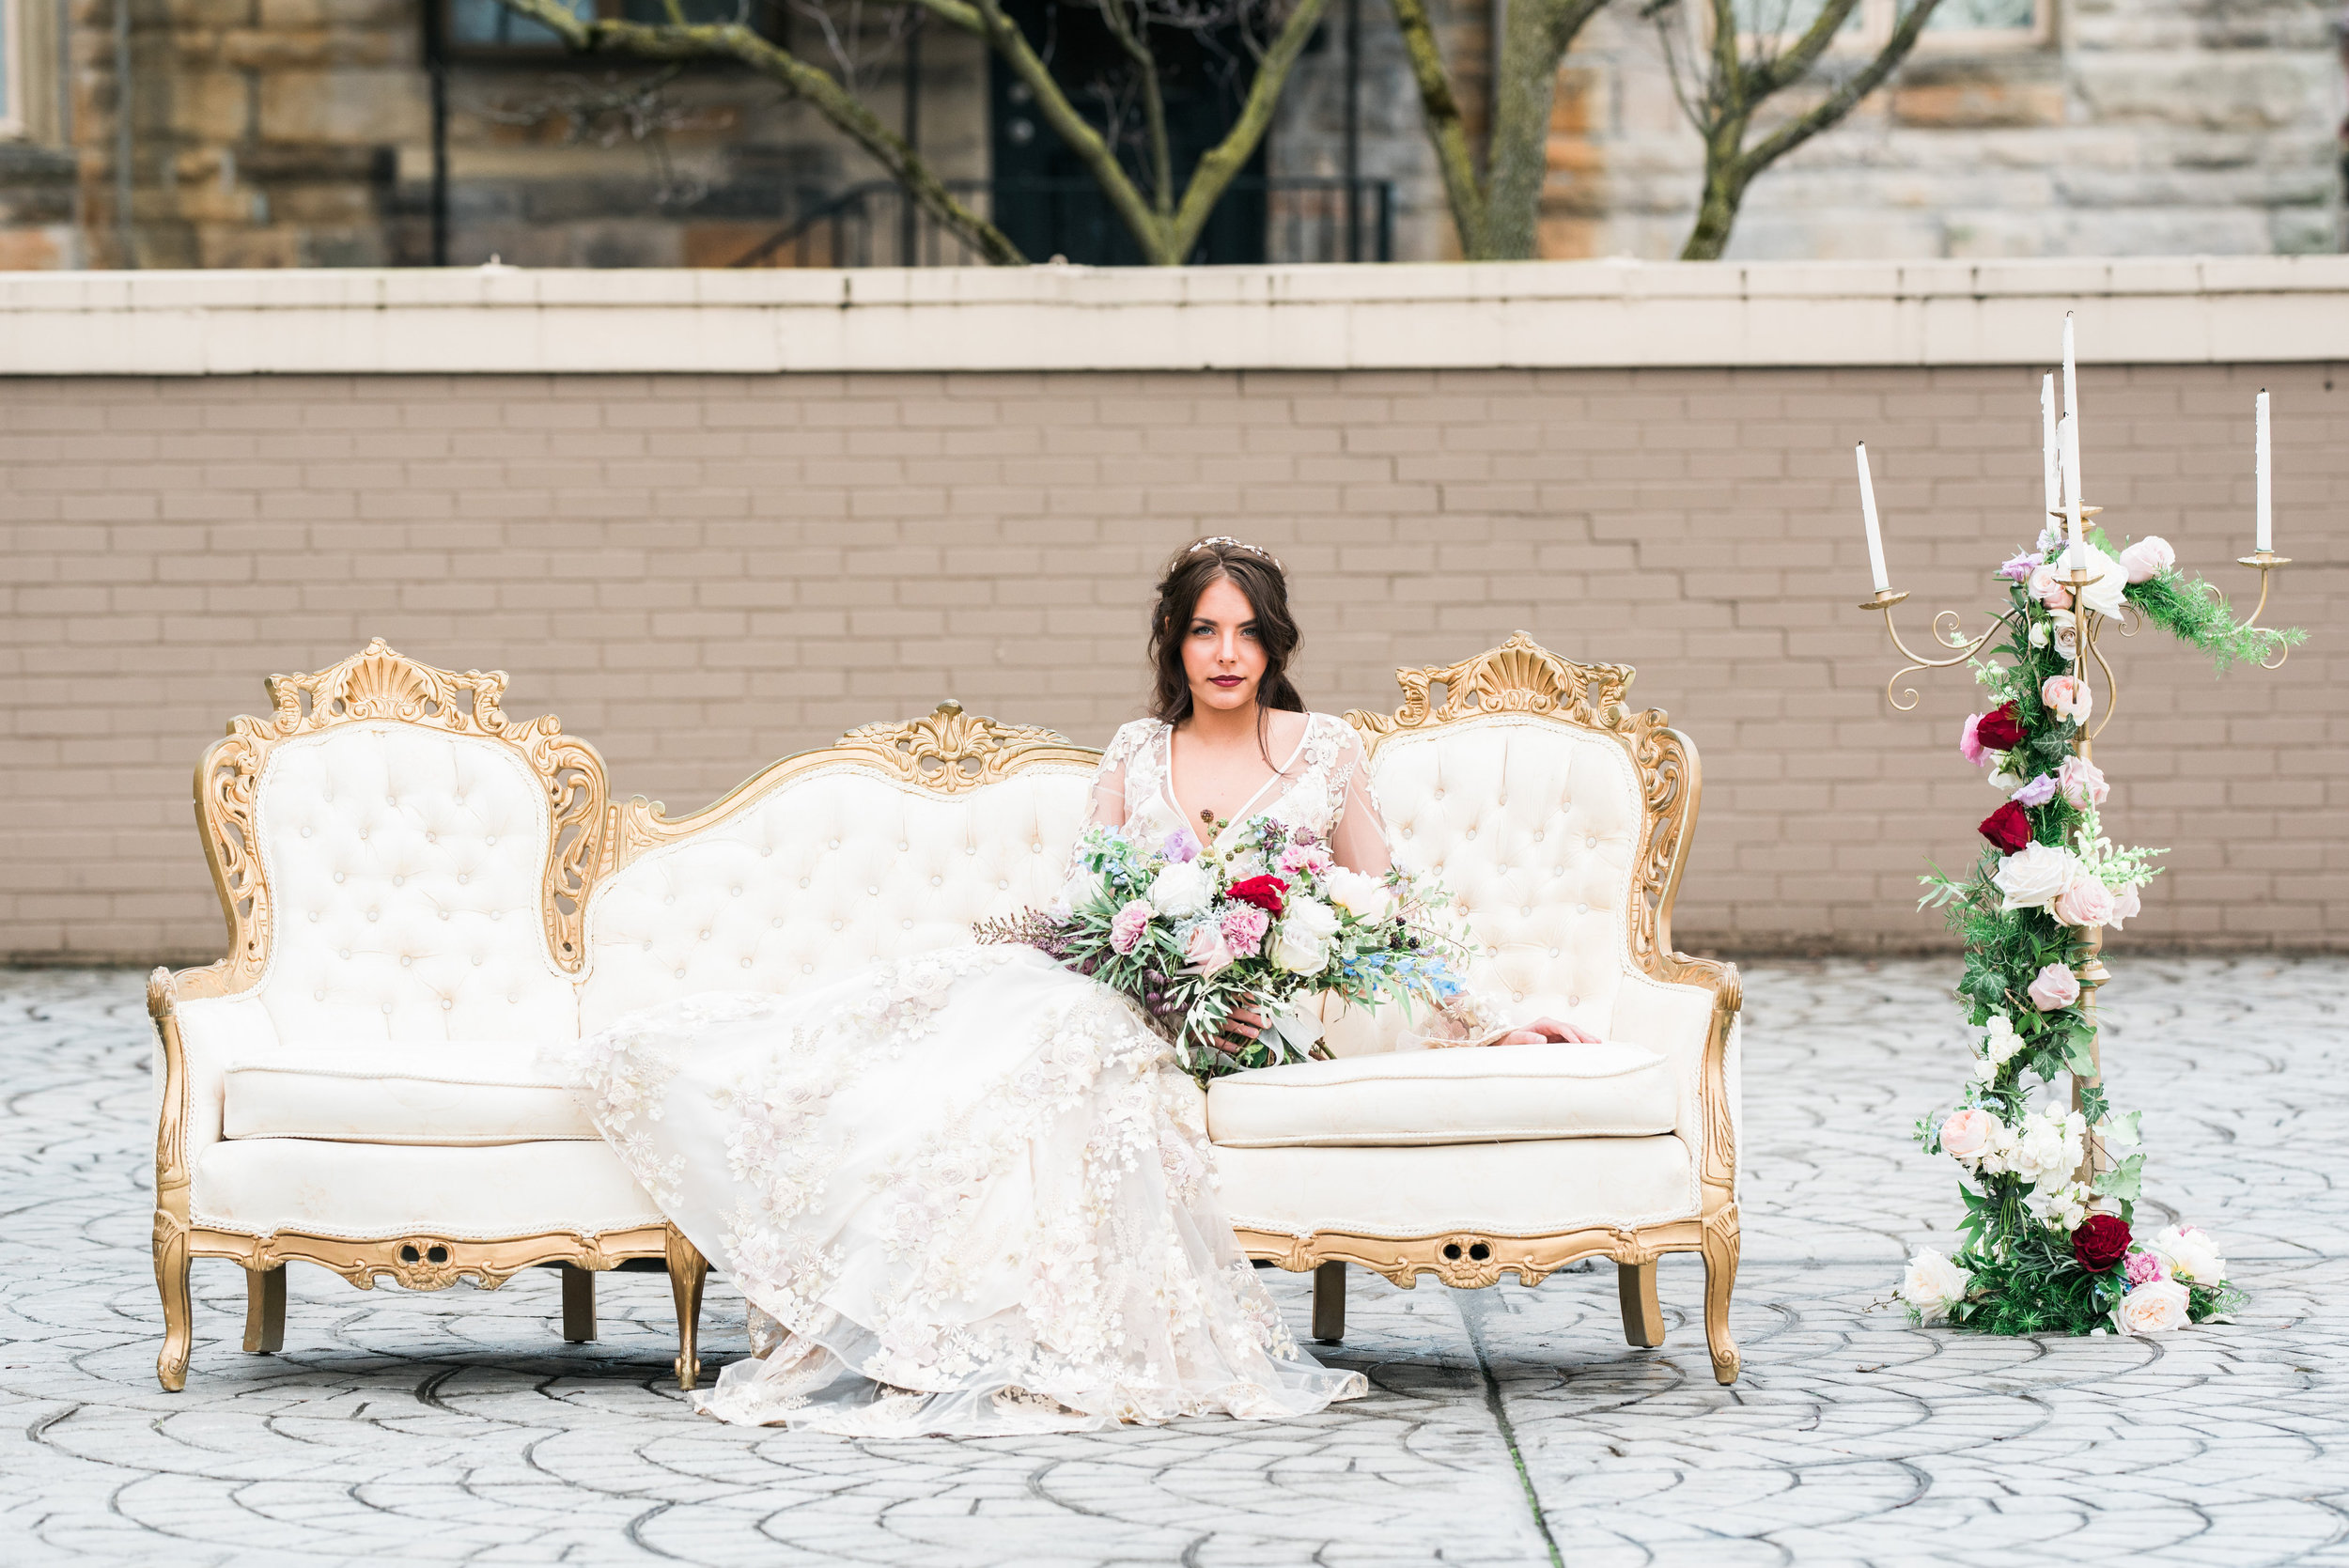 Beauty and the Beast Styled wedding photo shoot